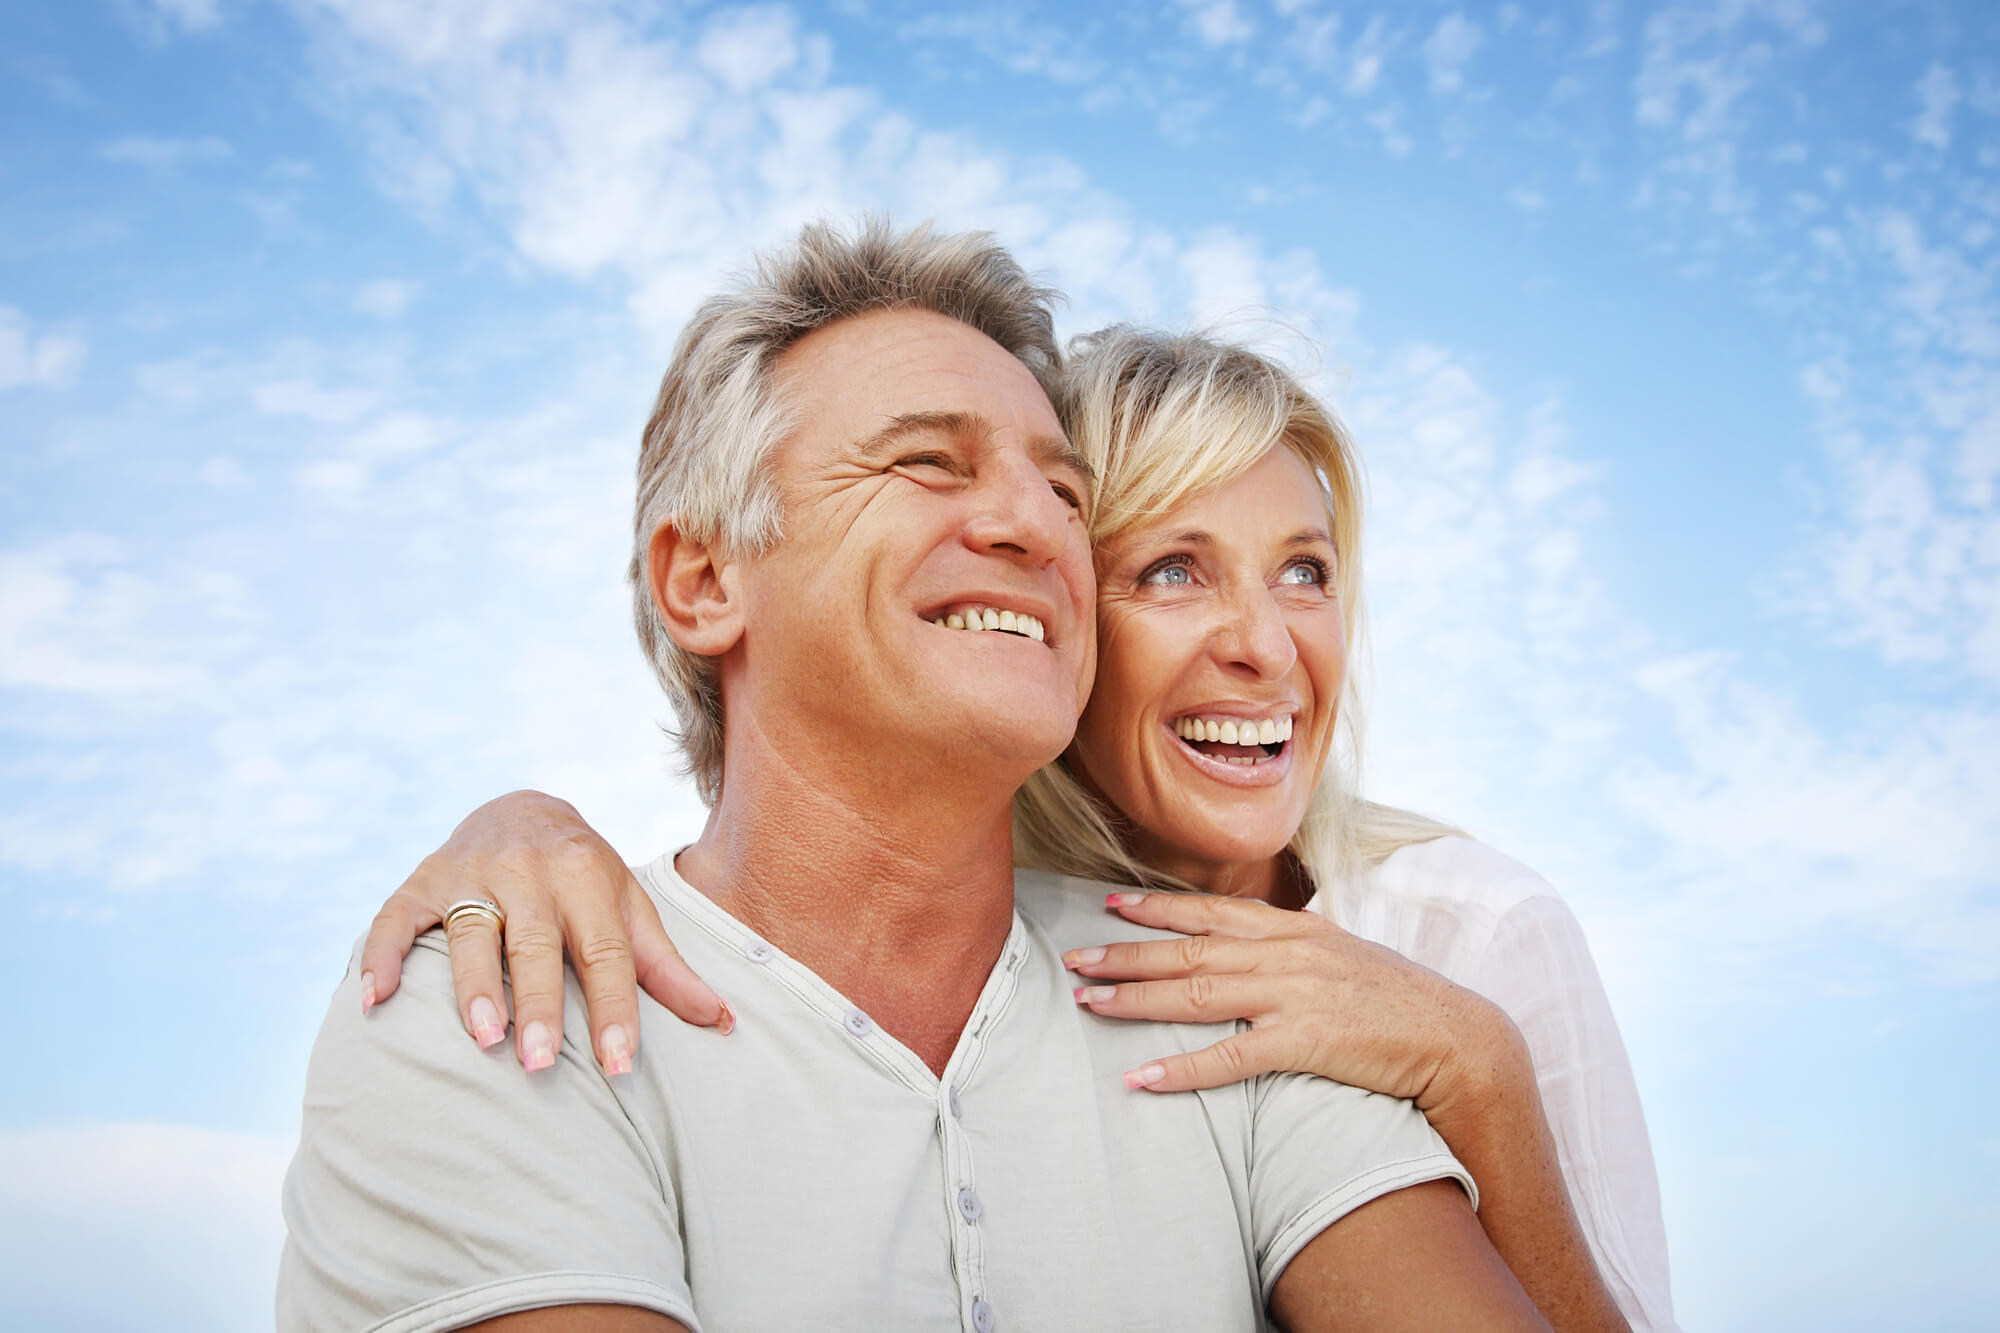 where can i get dentures in simpsonville sc?